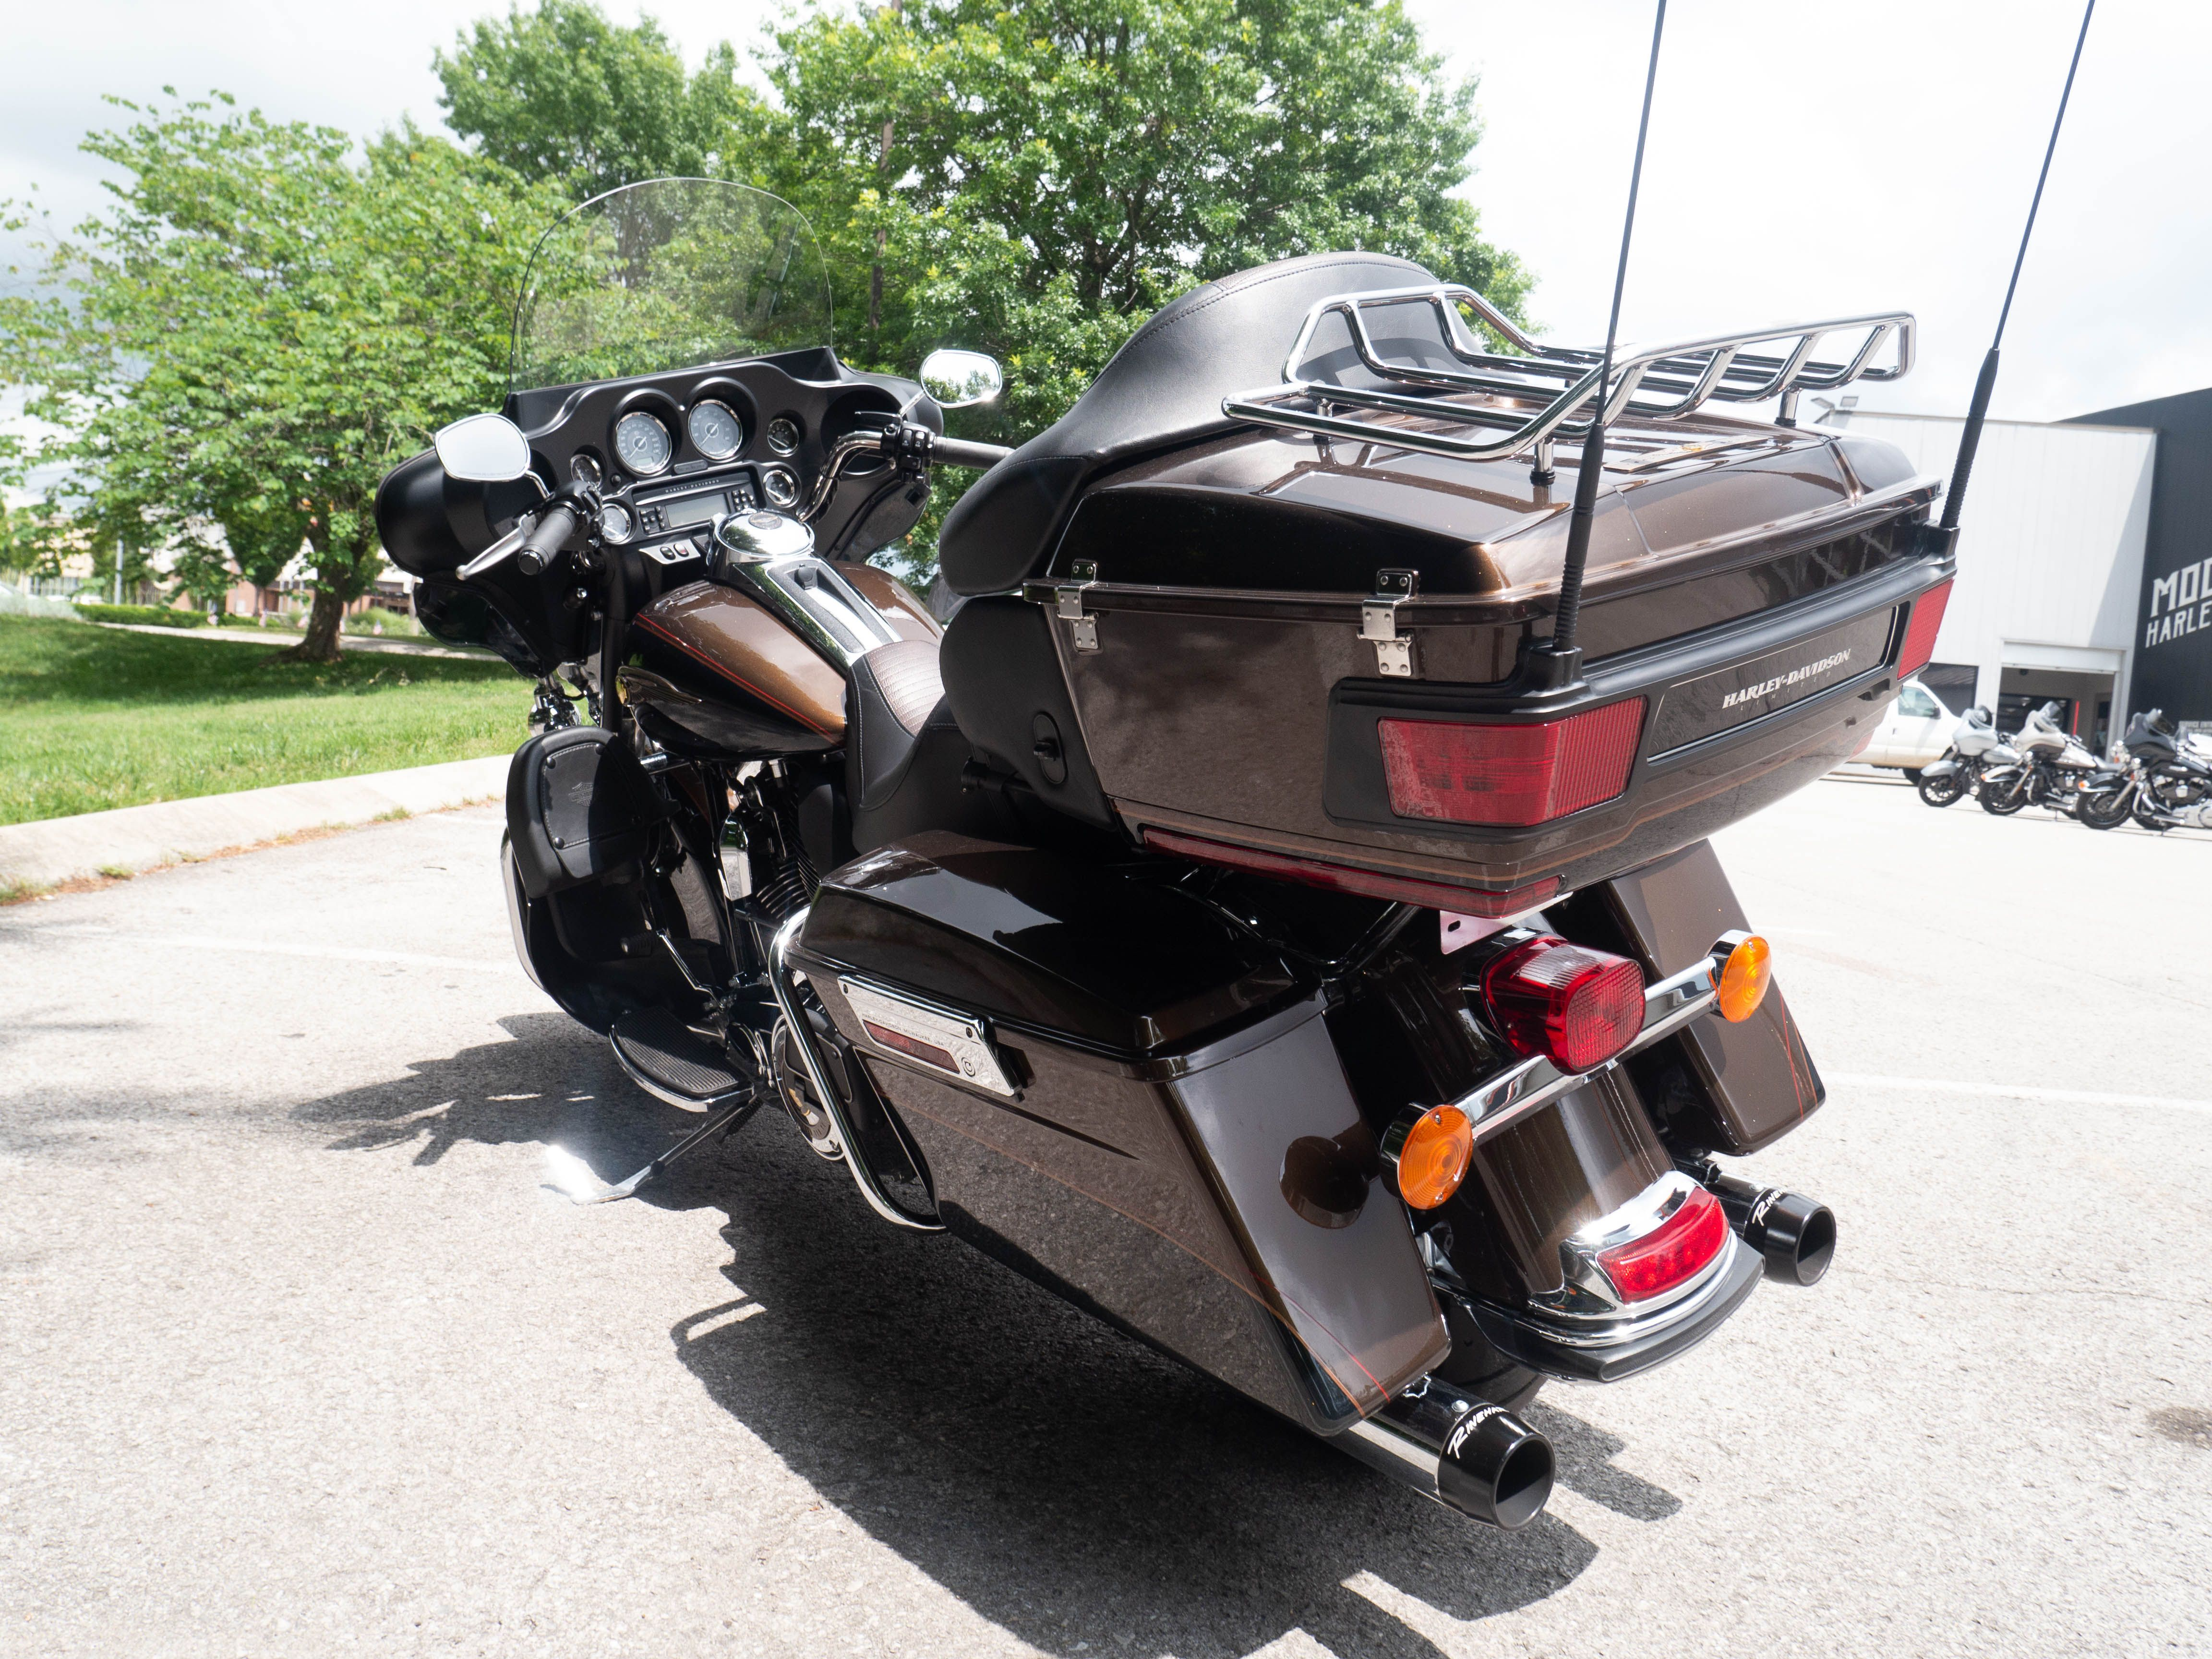 Pre-Owned 2013 Harley-Davidson Electra Glide Ultra Limited 110th Anniversary